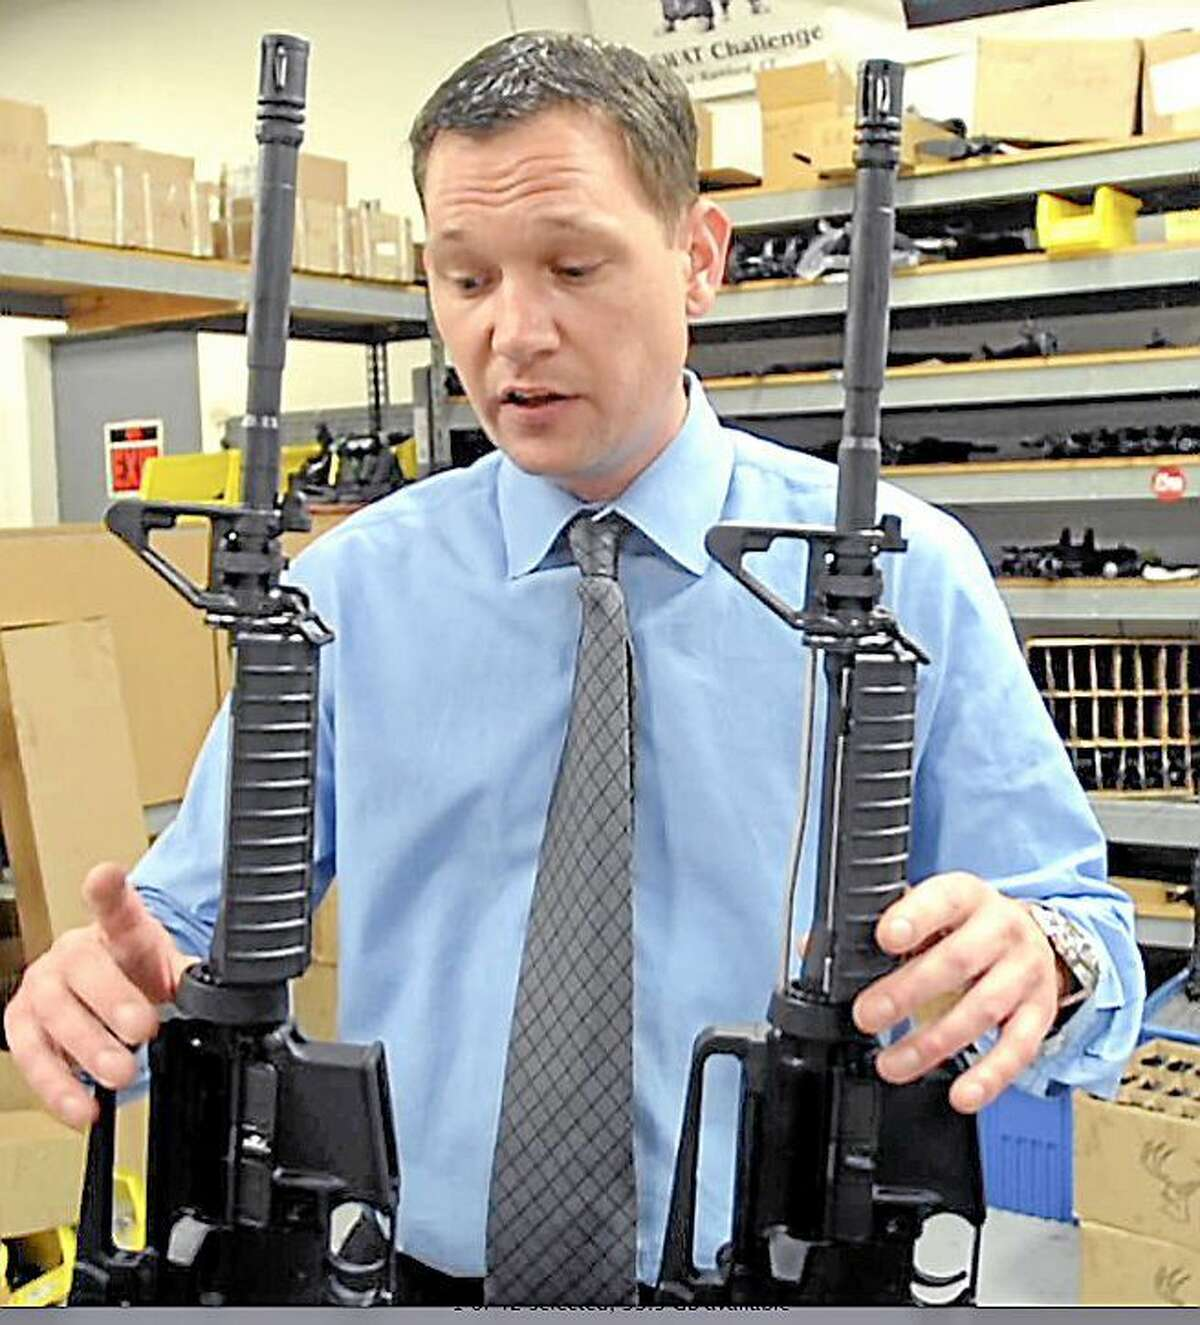 Mark Malkowski, President and CEO of Stag Arms in New Britain, displays the new Stag-22, left, a semi-automatic .22 rifle, an AR-15 looking product built from all AR-15 upper and lower components manufactured at his plant in New Britain.